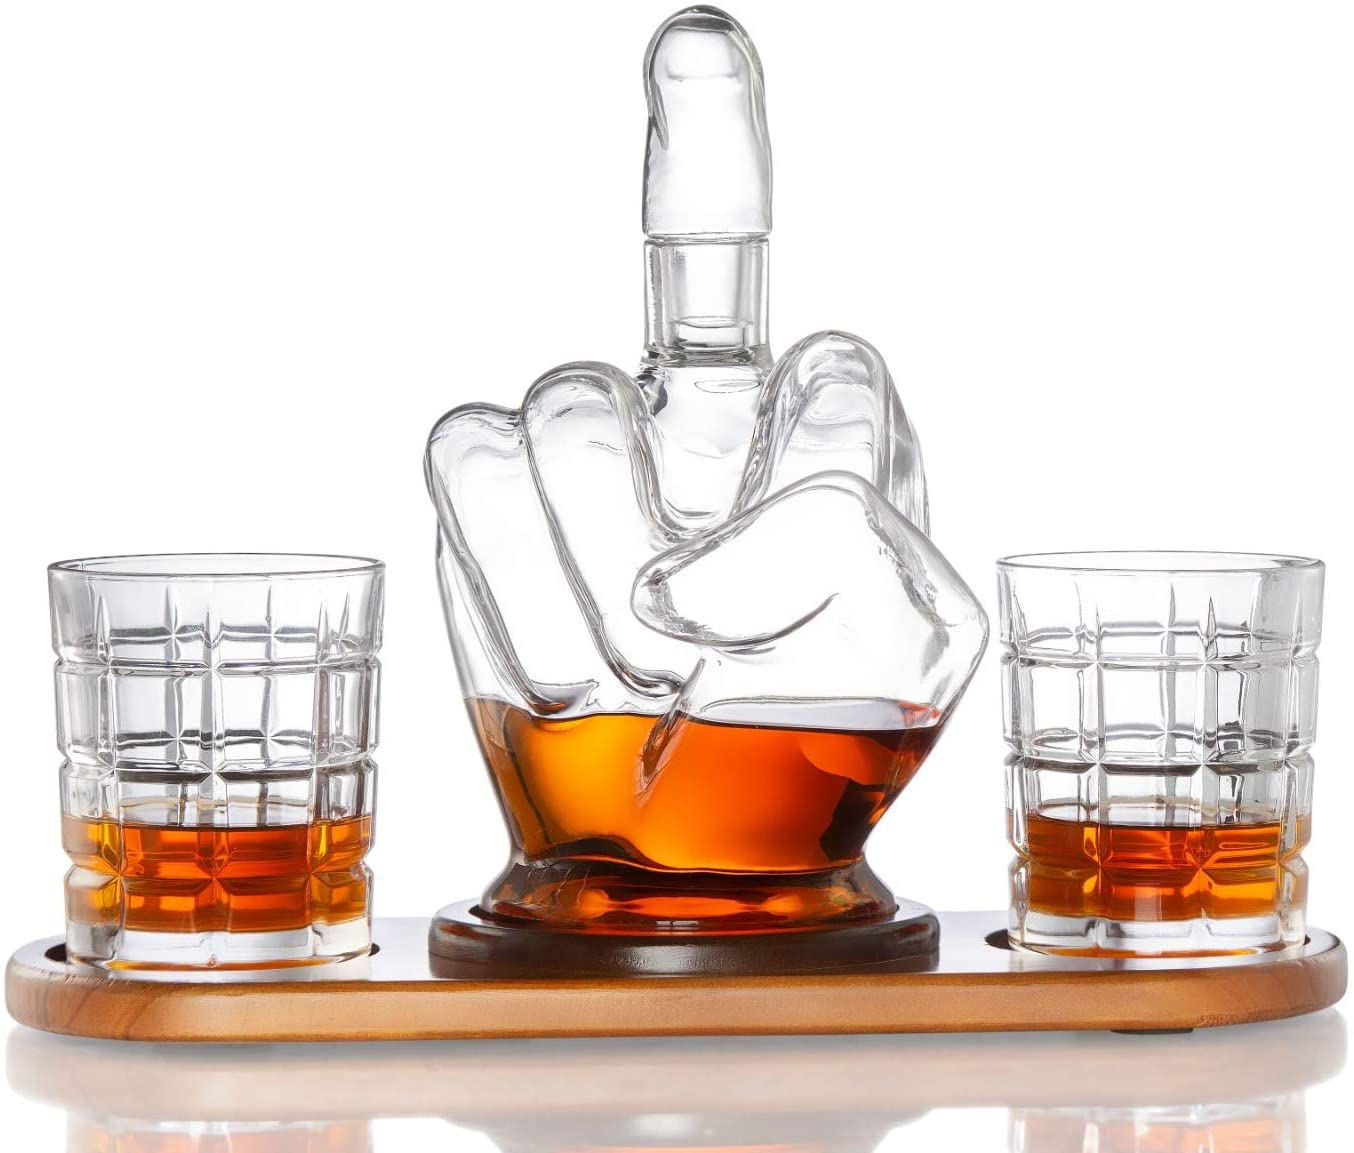 Diamond Decanter Middle Finger Whiskey Decanter Set - Unique & Funny Glass Container for Scotch, Tequila, Brandy, Rum, Bourbon & Other Alcoholic Drinks - Gift Accessories for Men, Dads, Boyfriends